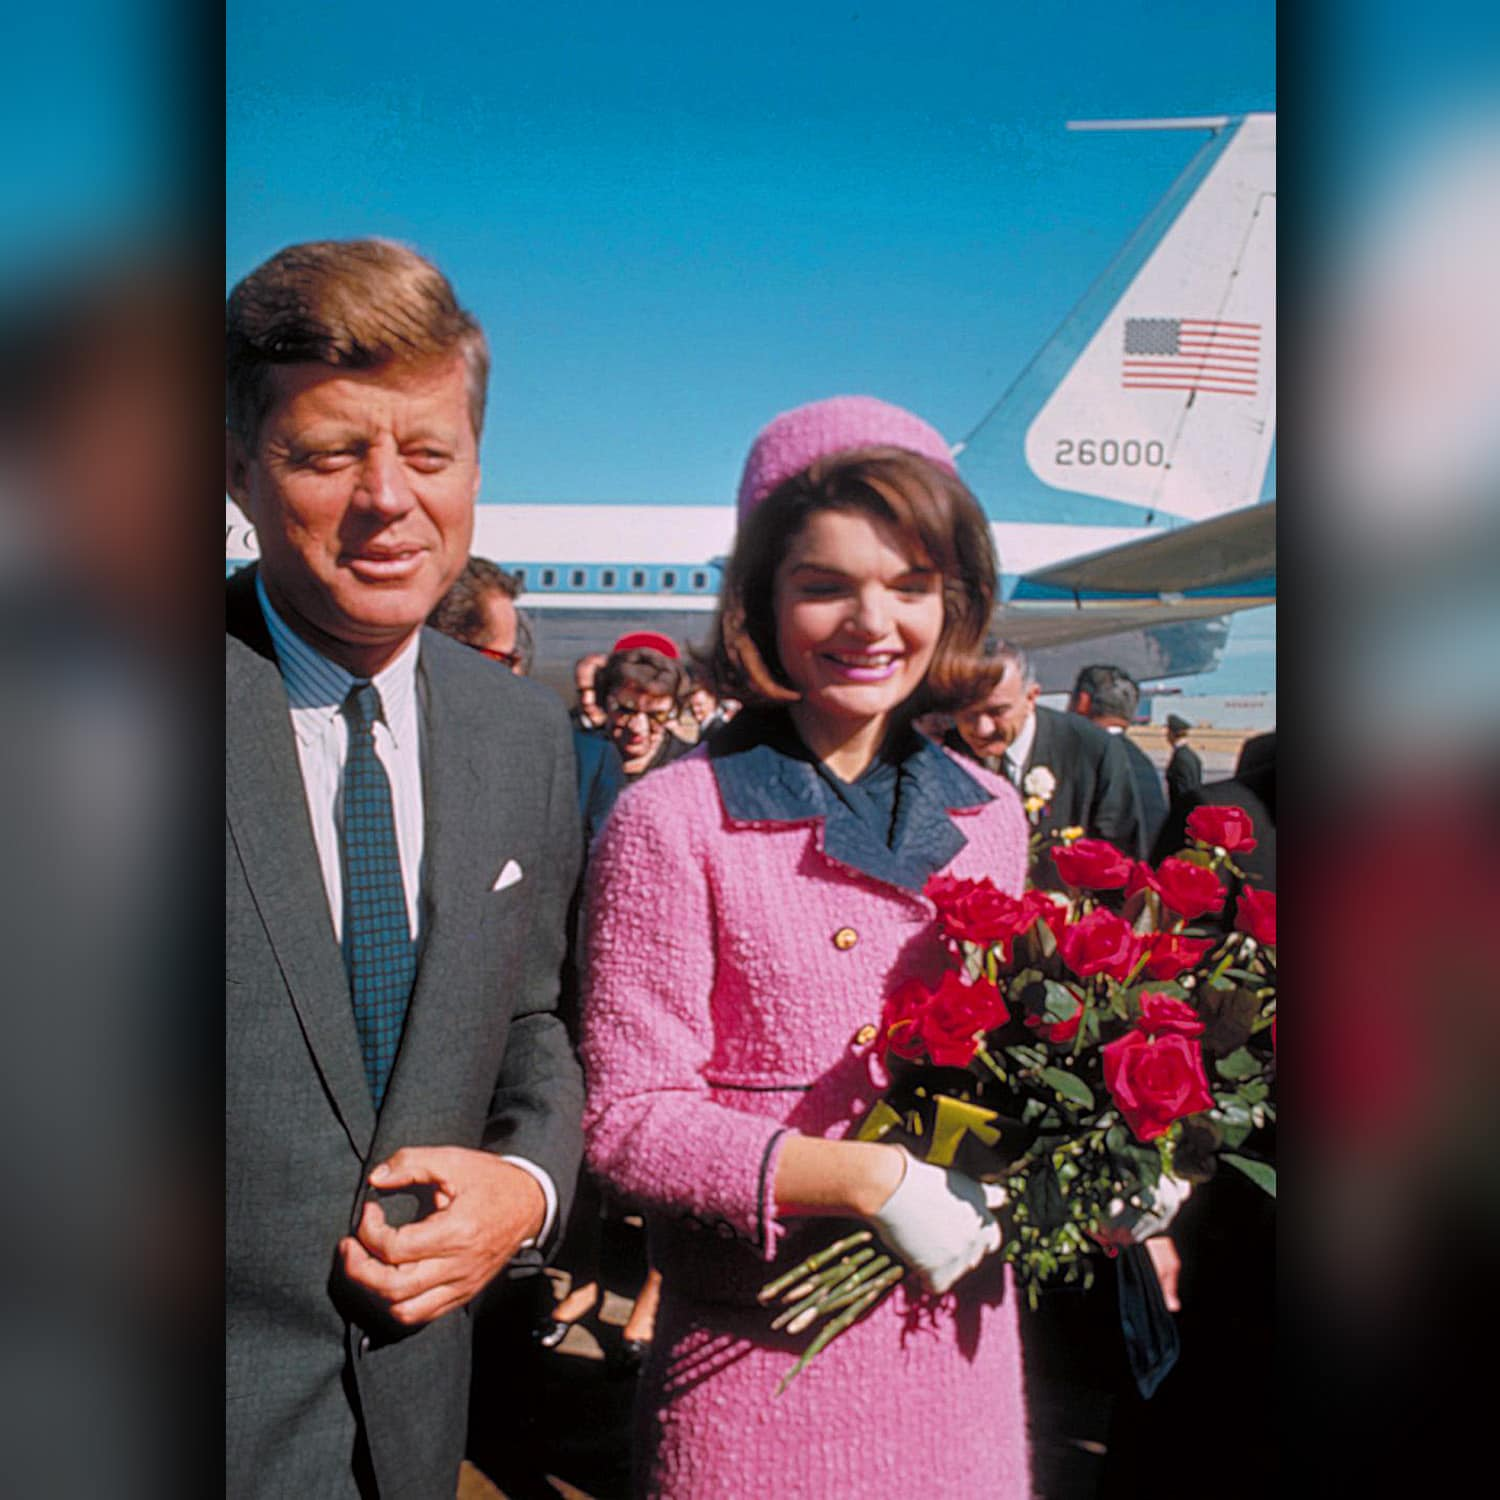 Jackie Kennedy in Pink CHANEL Suit CHANEL in Dallas. The whole post-war generation was growing up with this typecast